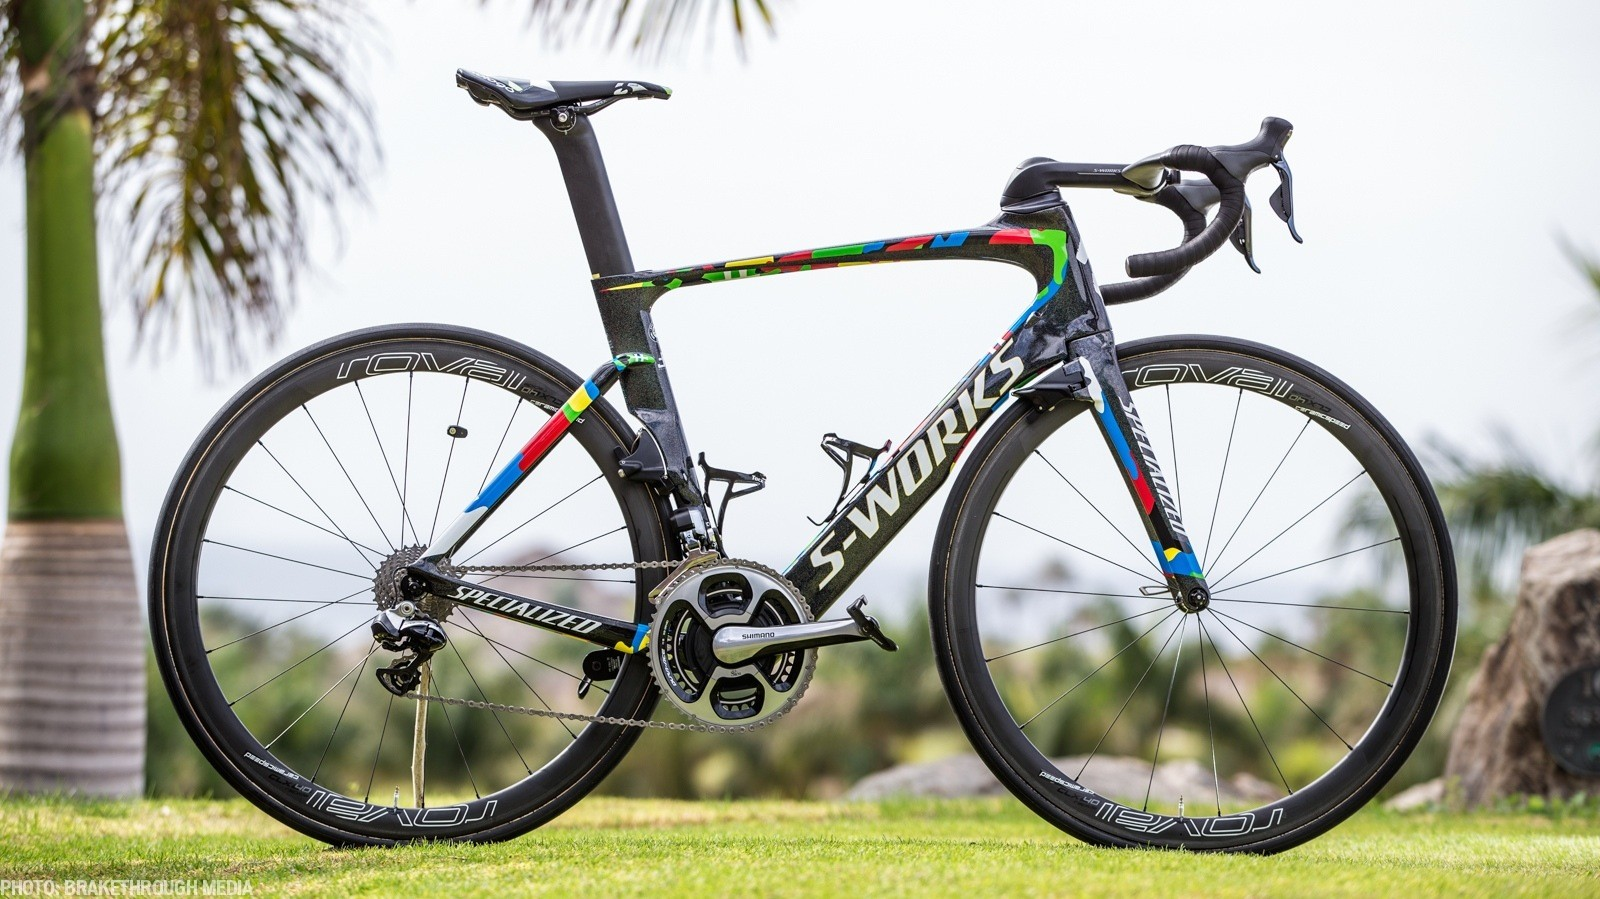 The custom-painted Specialized S-Works Venge ViAS of world champion Peter Sagan